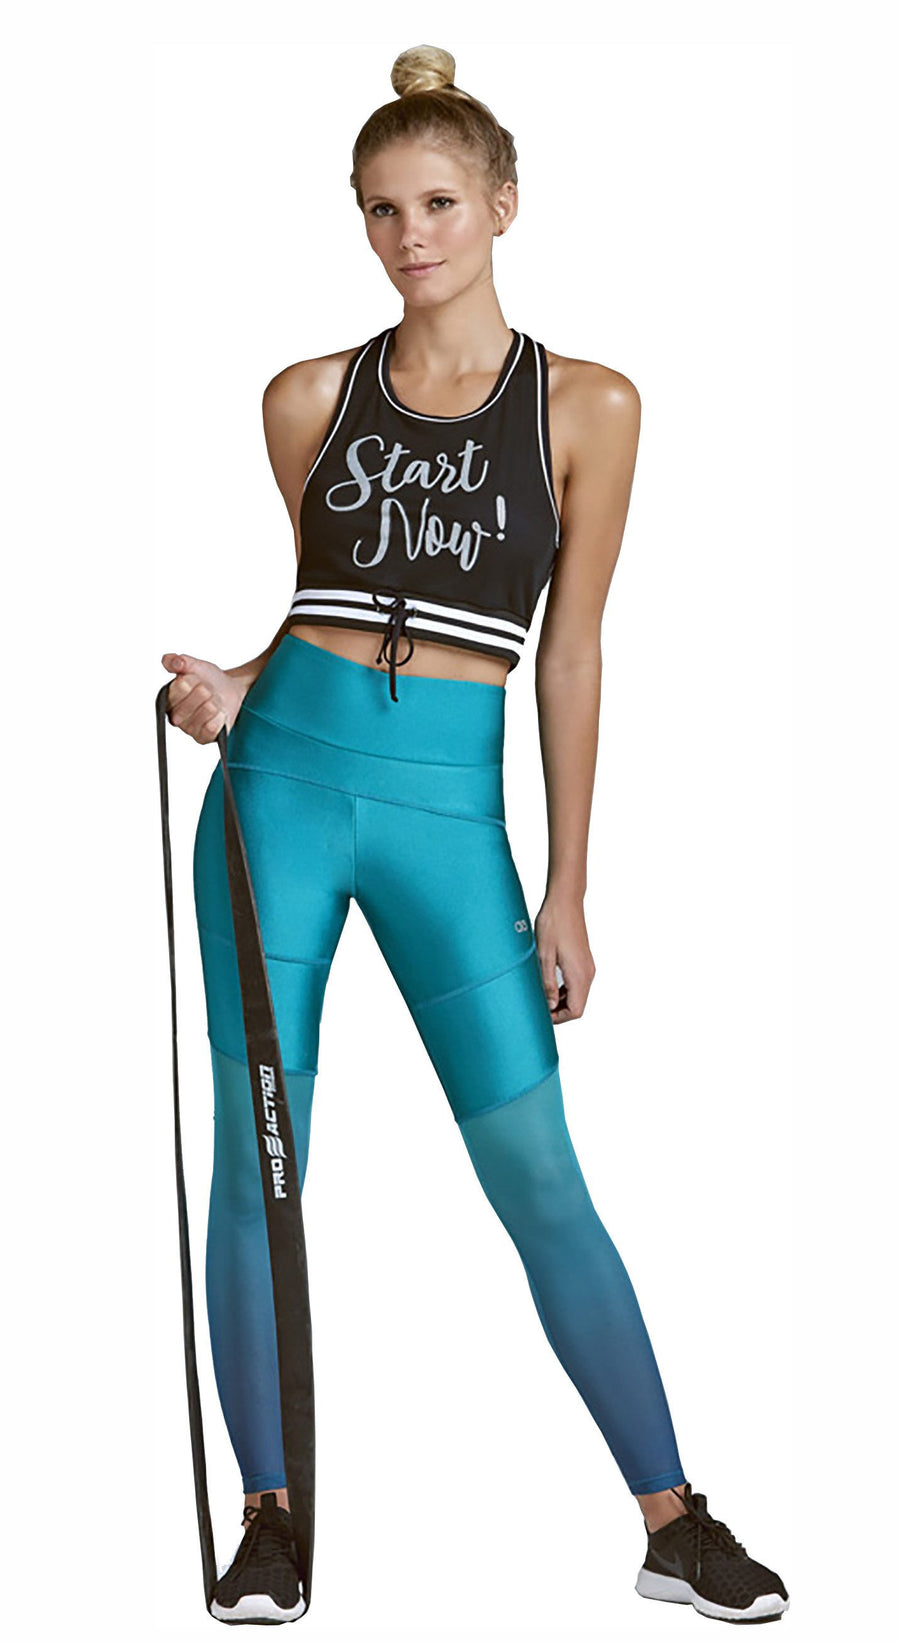 Brazilian Workout Legging- High Waist Atlanta Mesh Green or Black